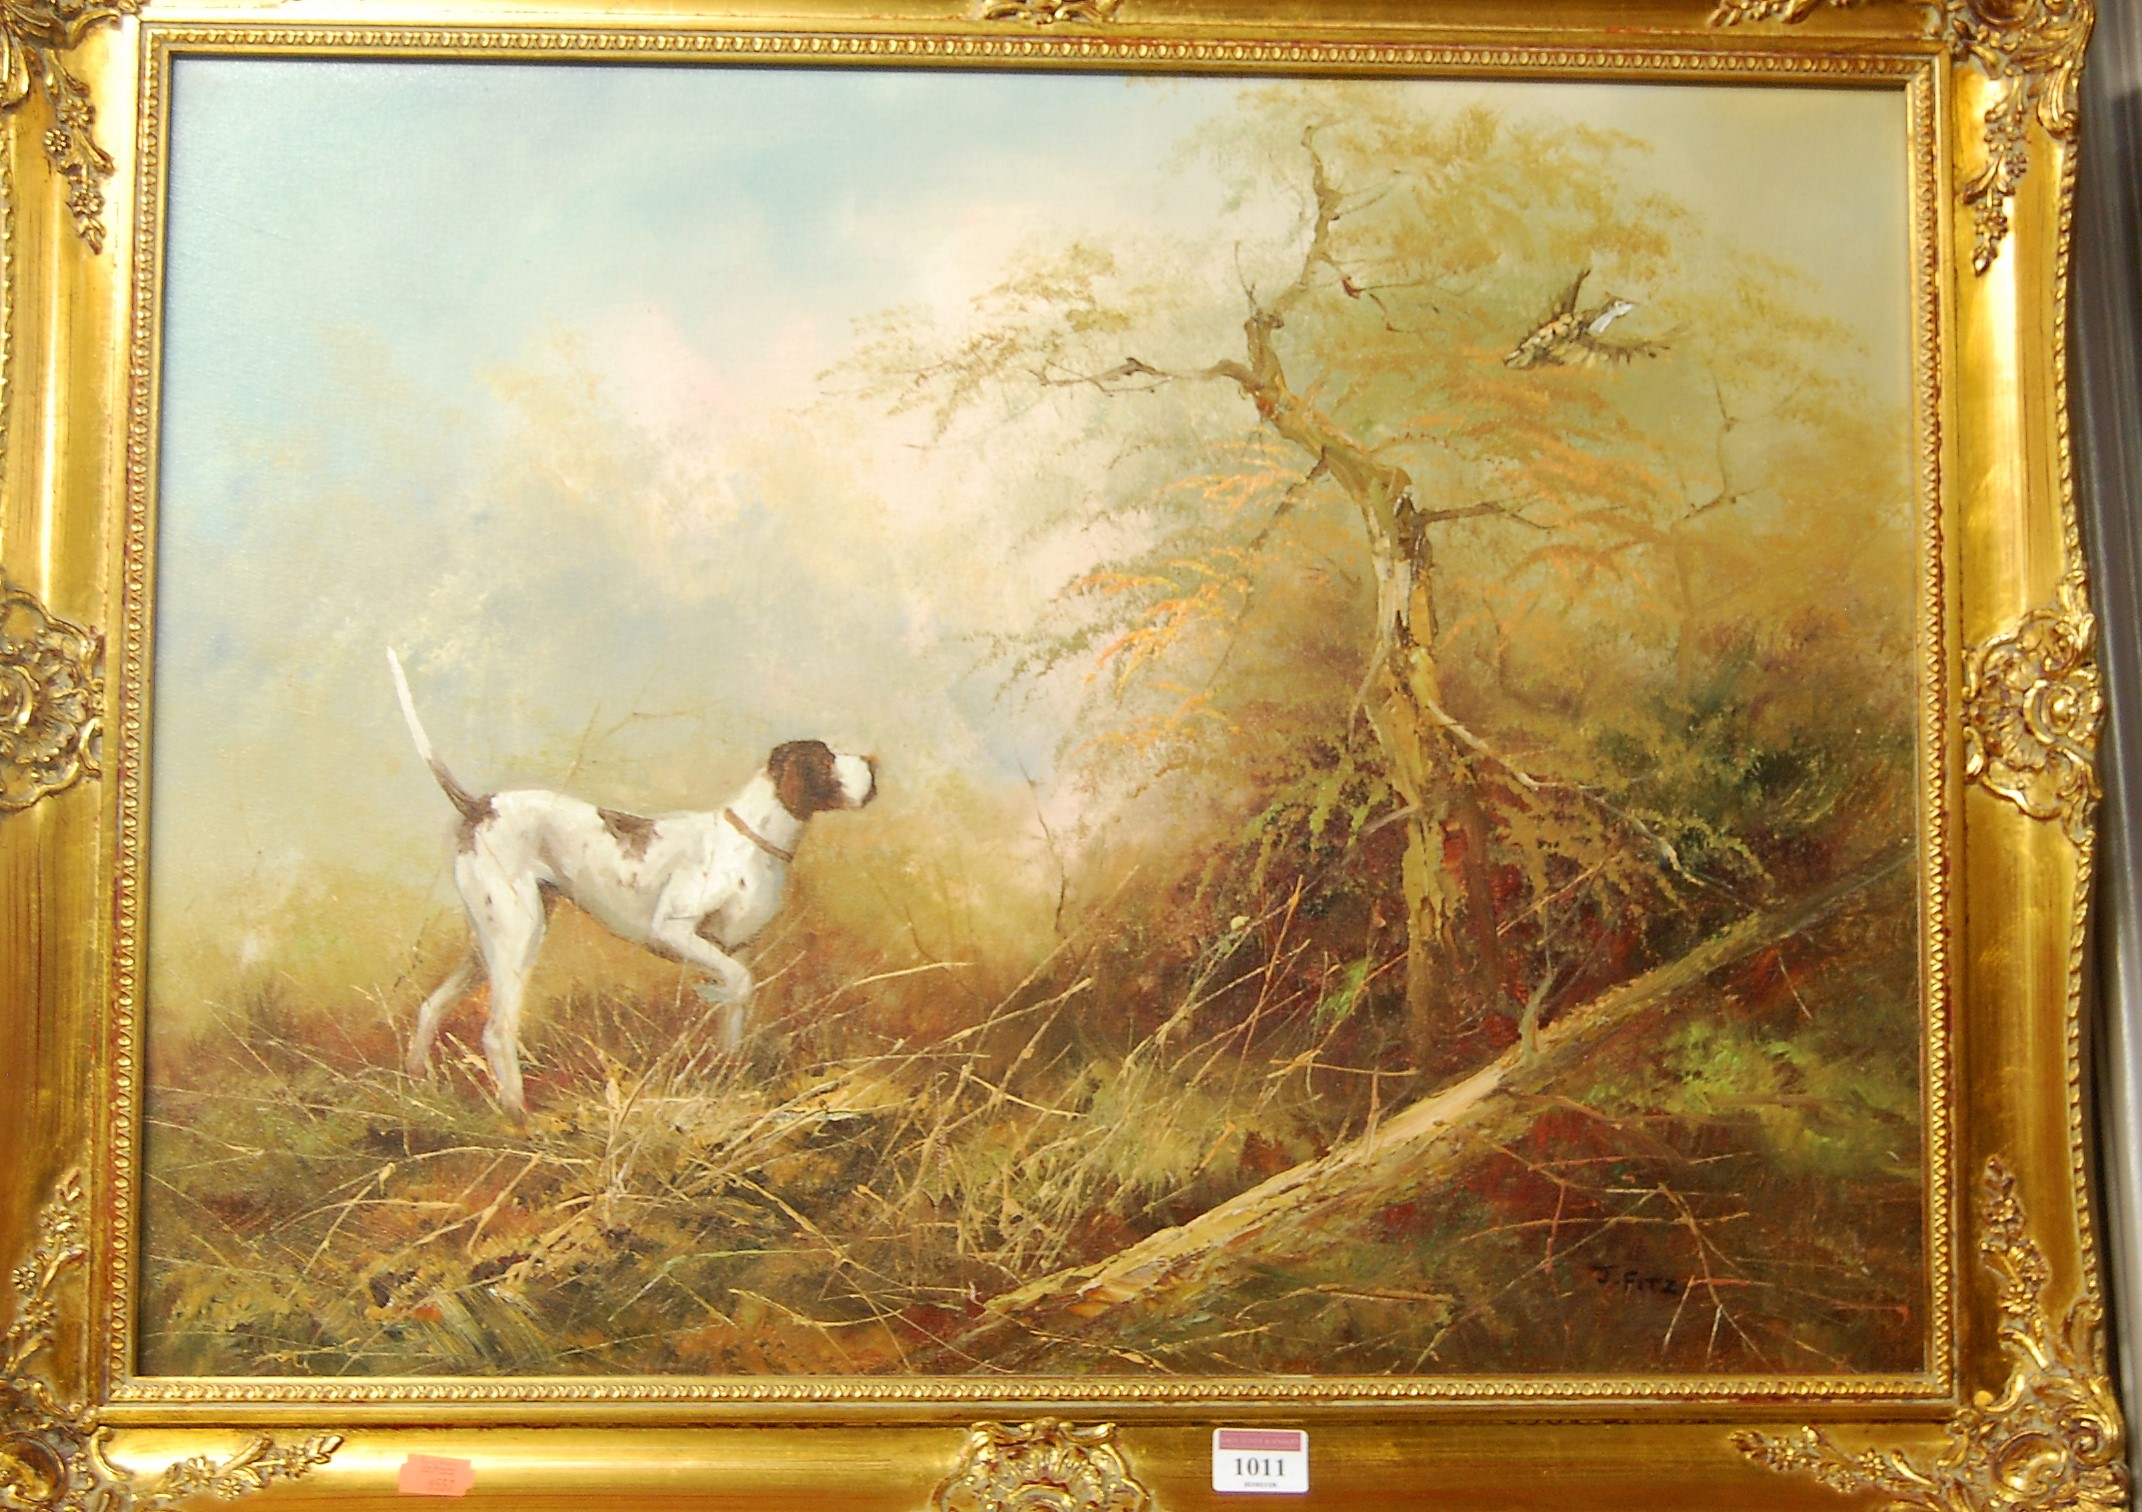 Lot 1011 - J Fitz - Hunting hound and gamebird in a woodland, oil on canvas, signed lower right, 45 x 60cm